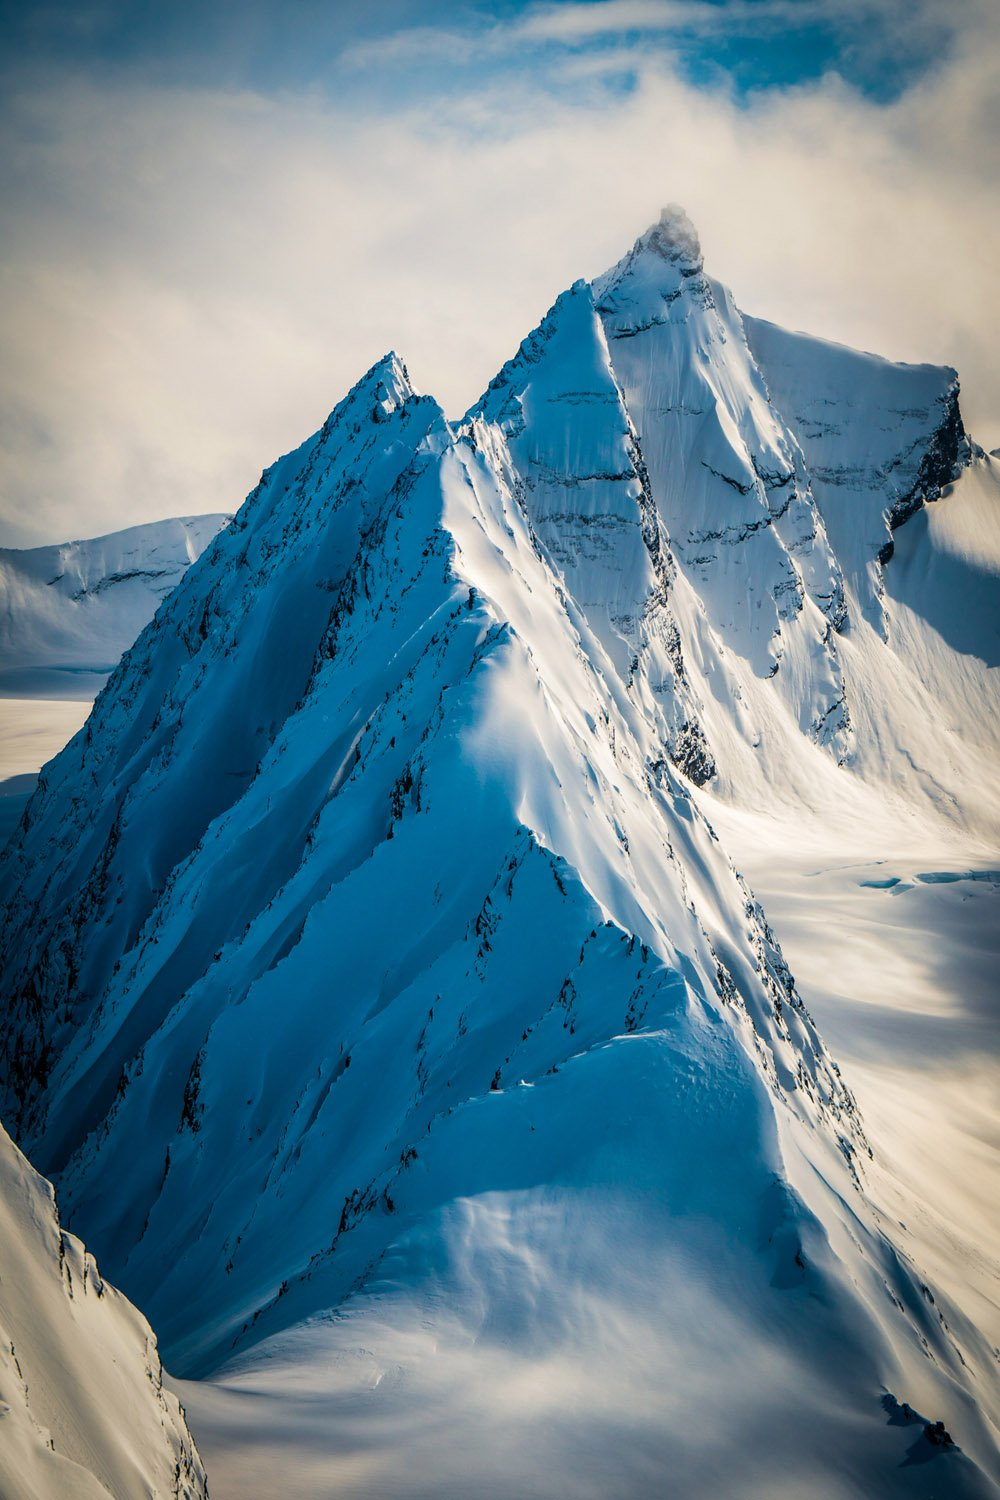 Landscape Photography, mountain with snow